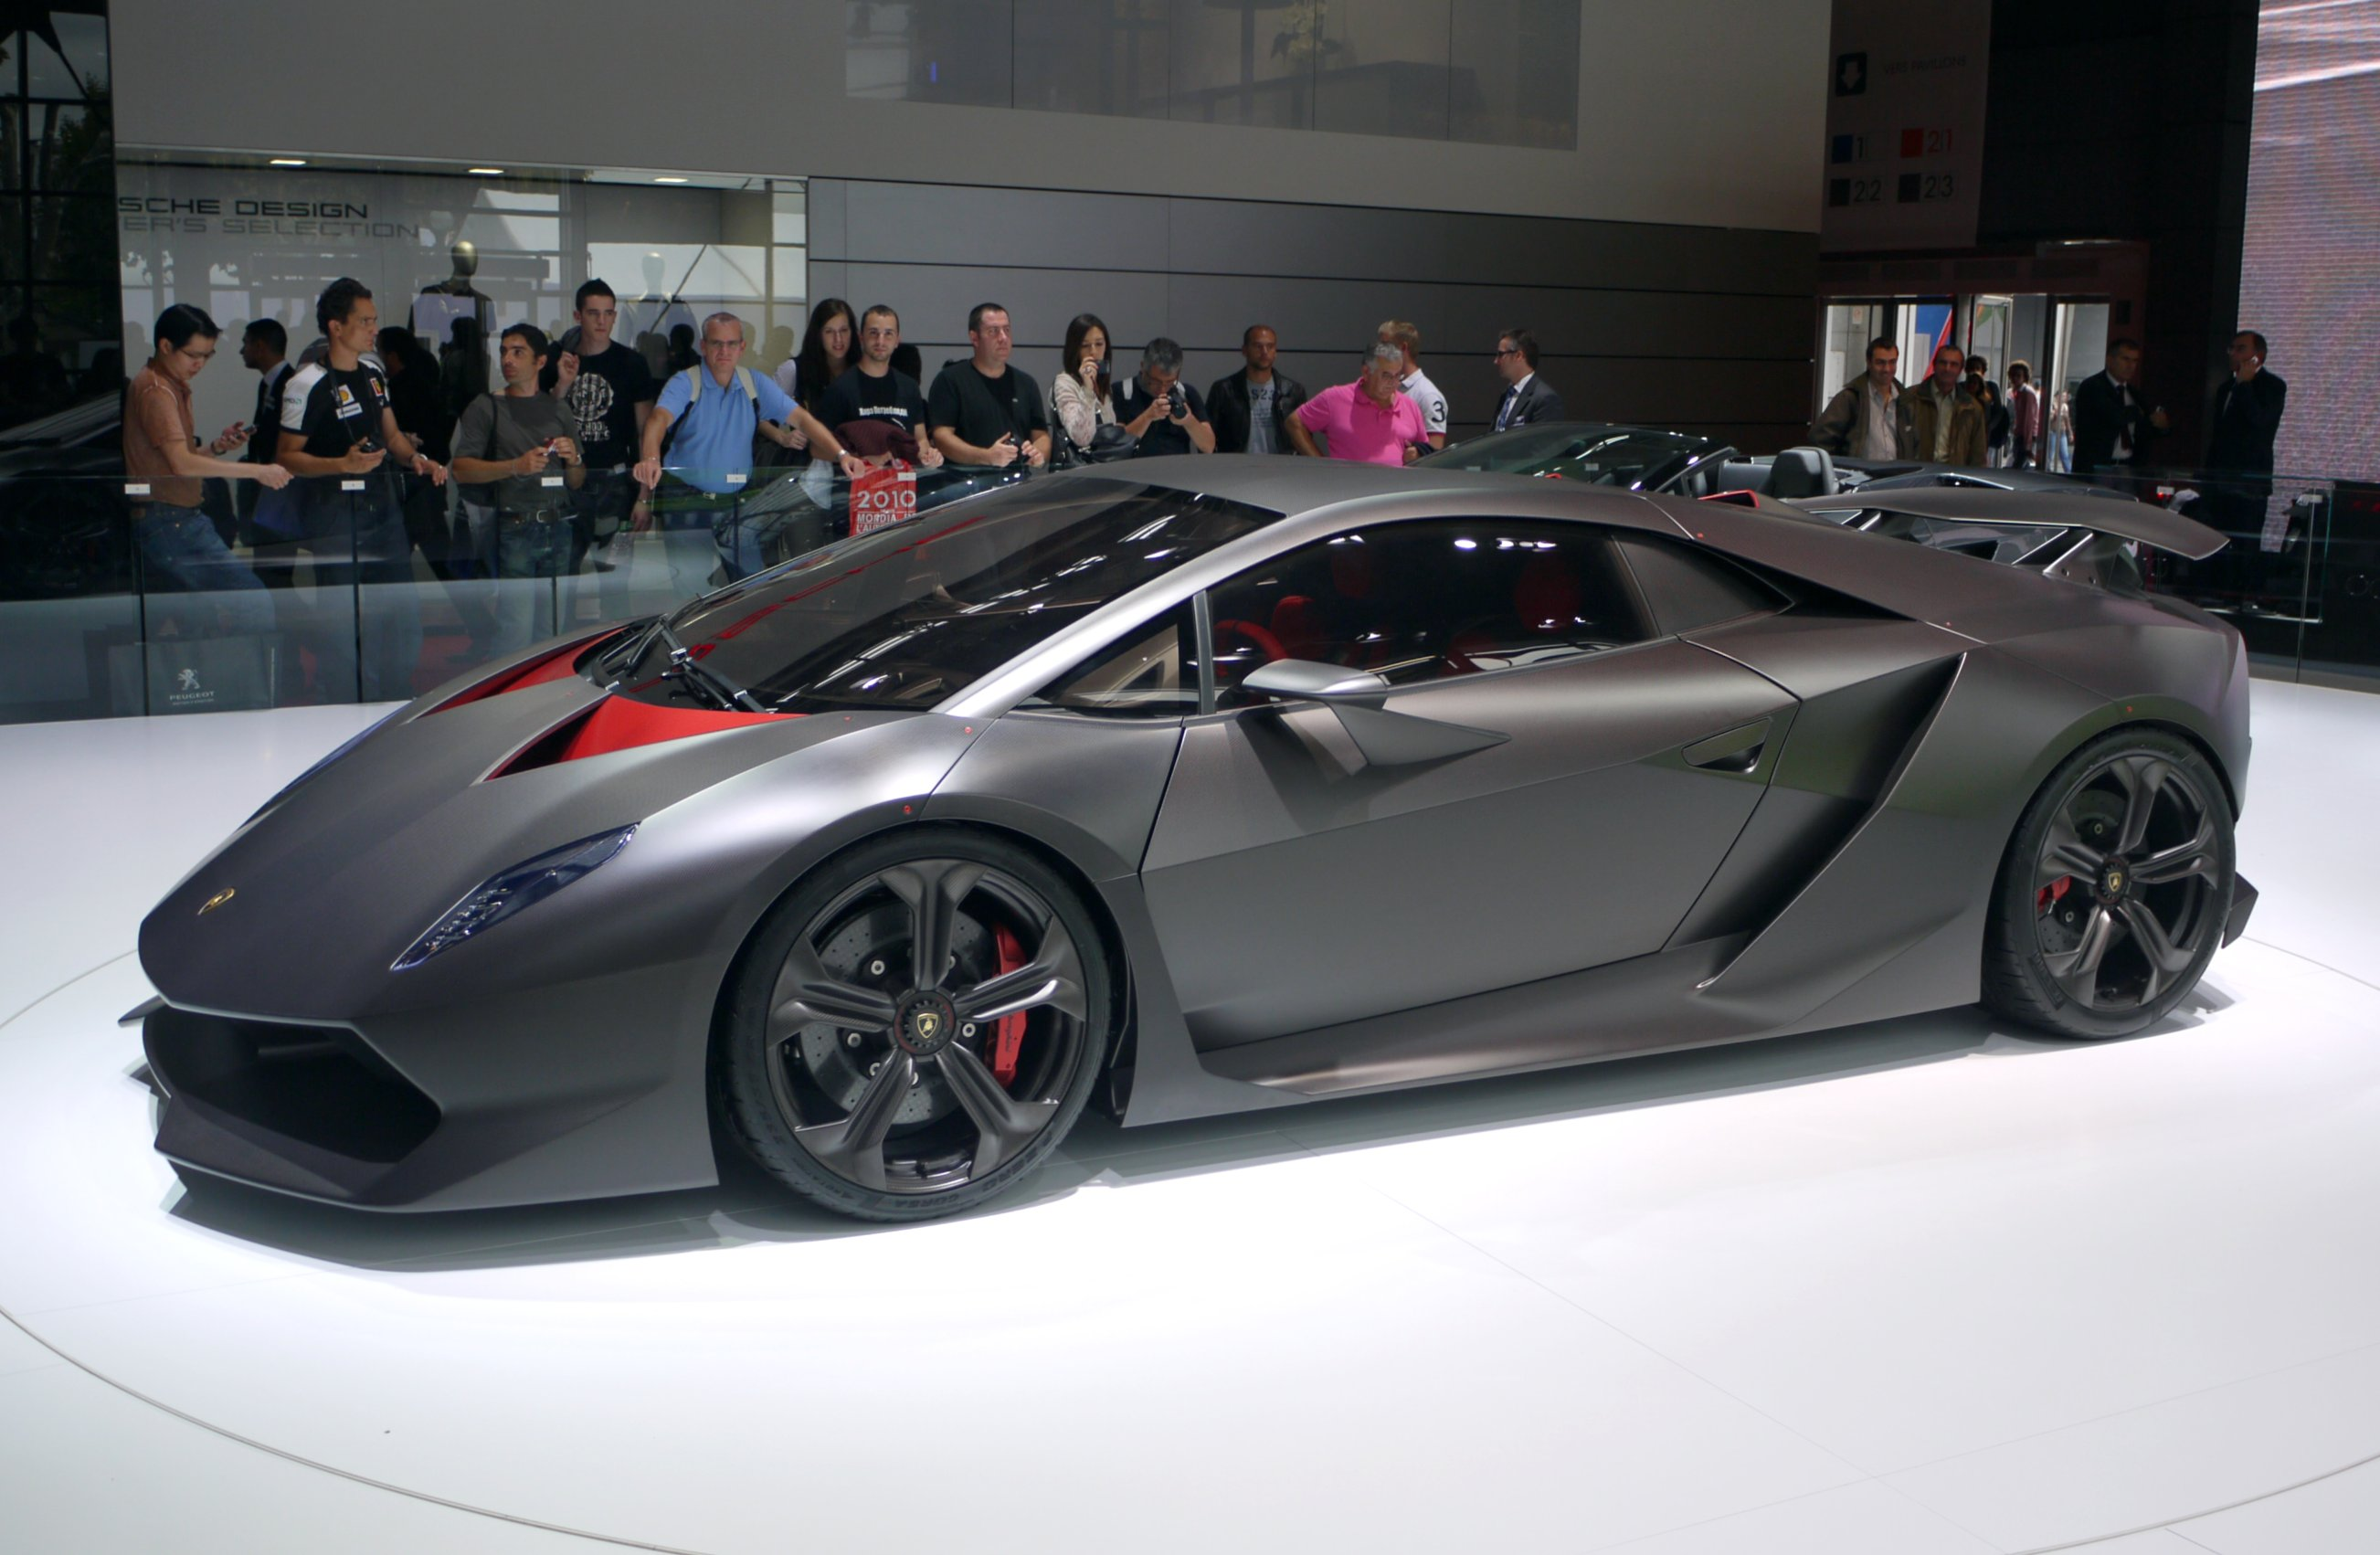 The Sesto Elemento Concept On Display At The 2010 Paris Motor Show.  Lamborghini ...